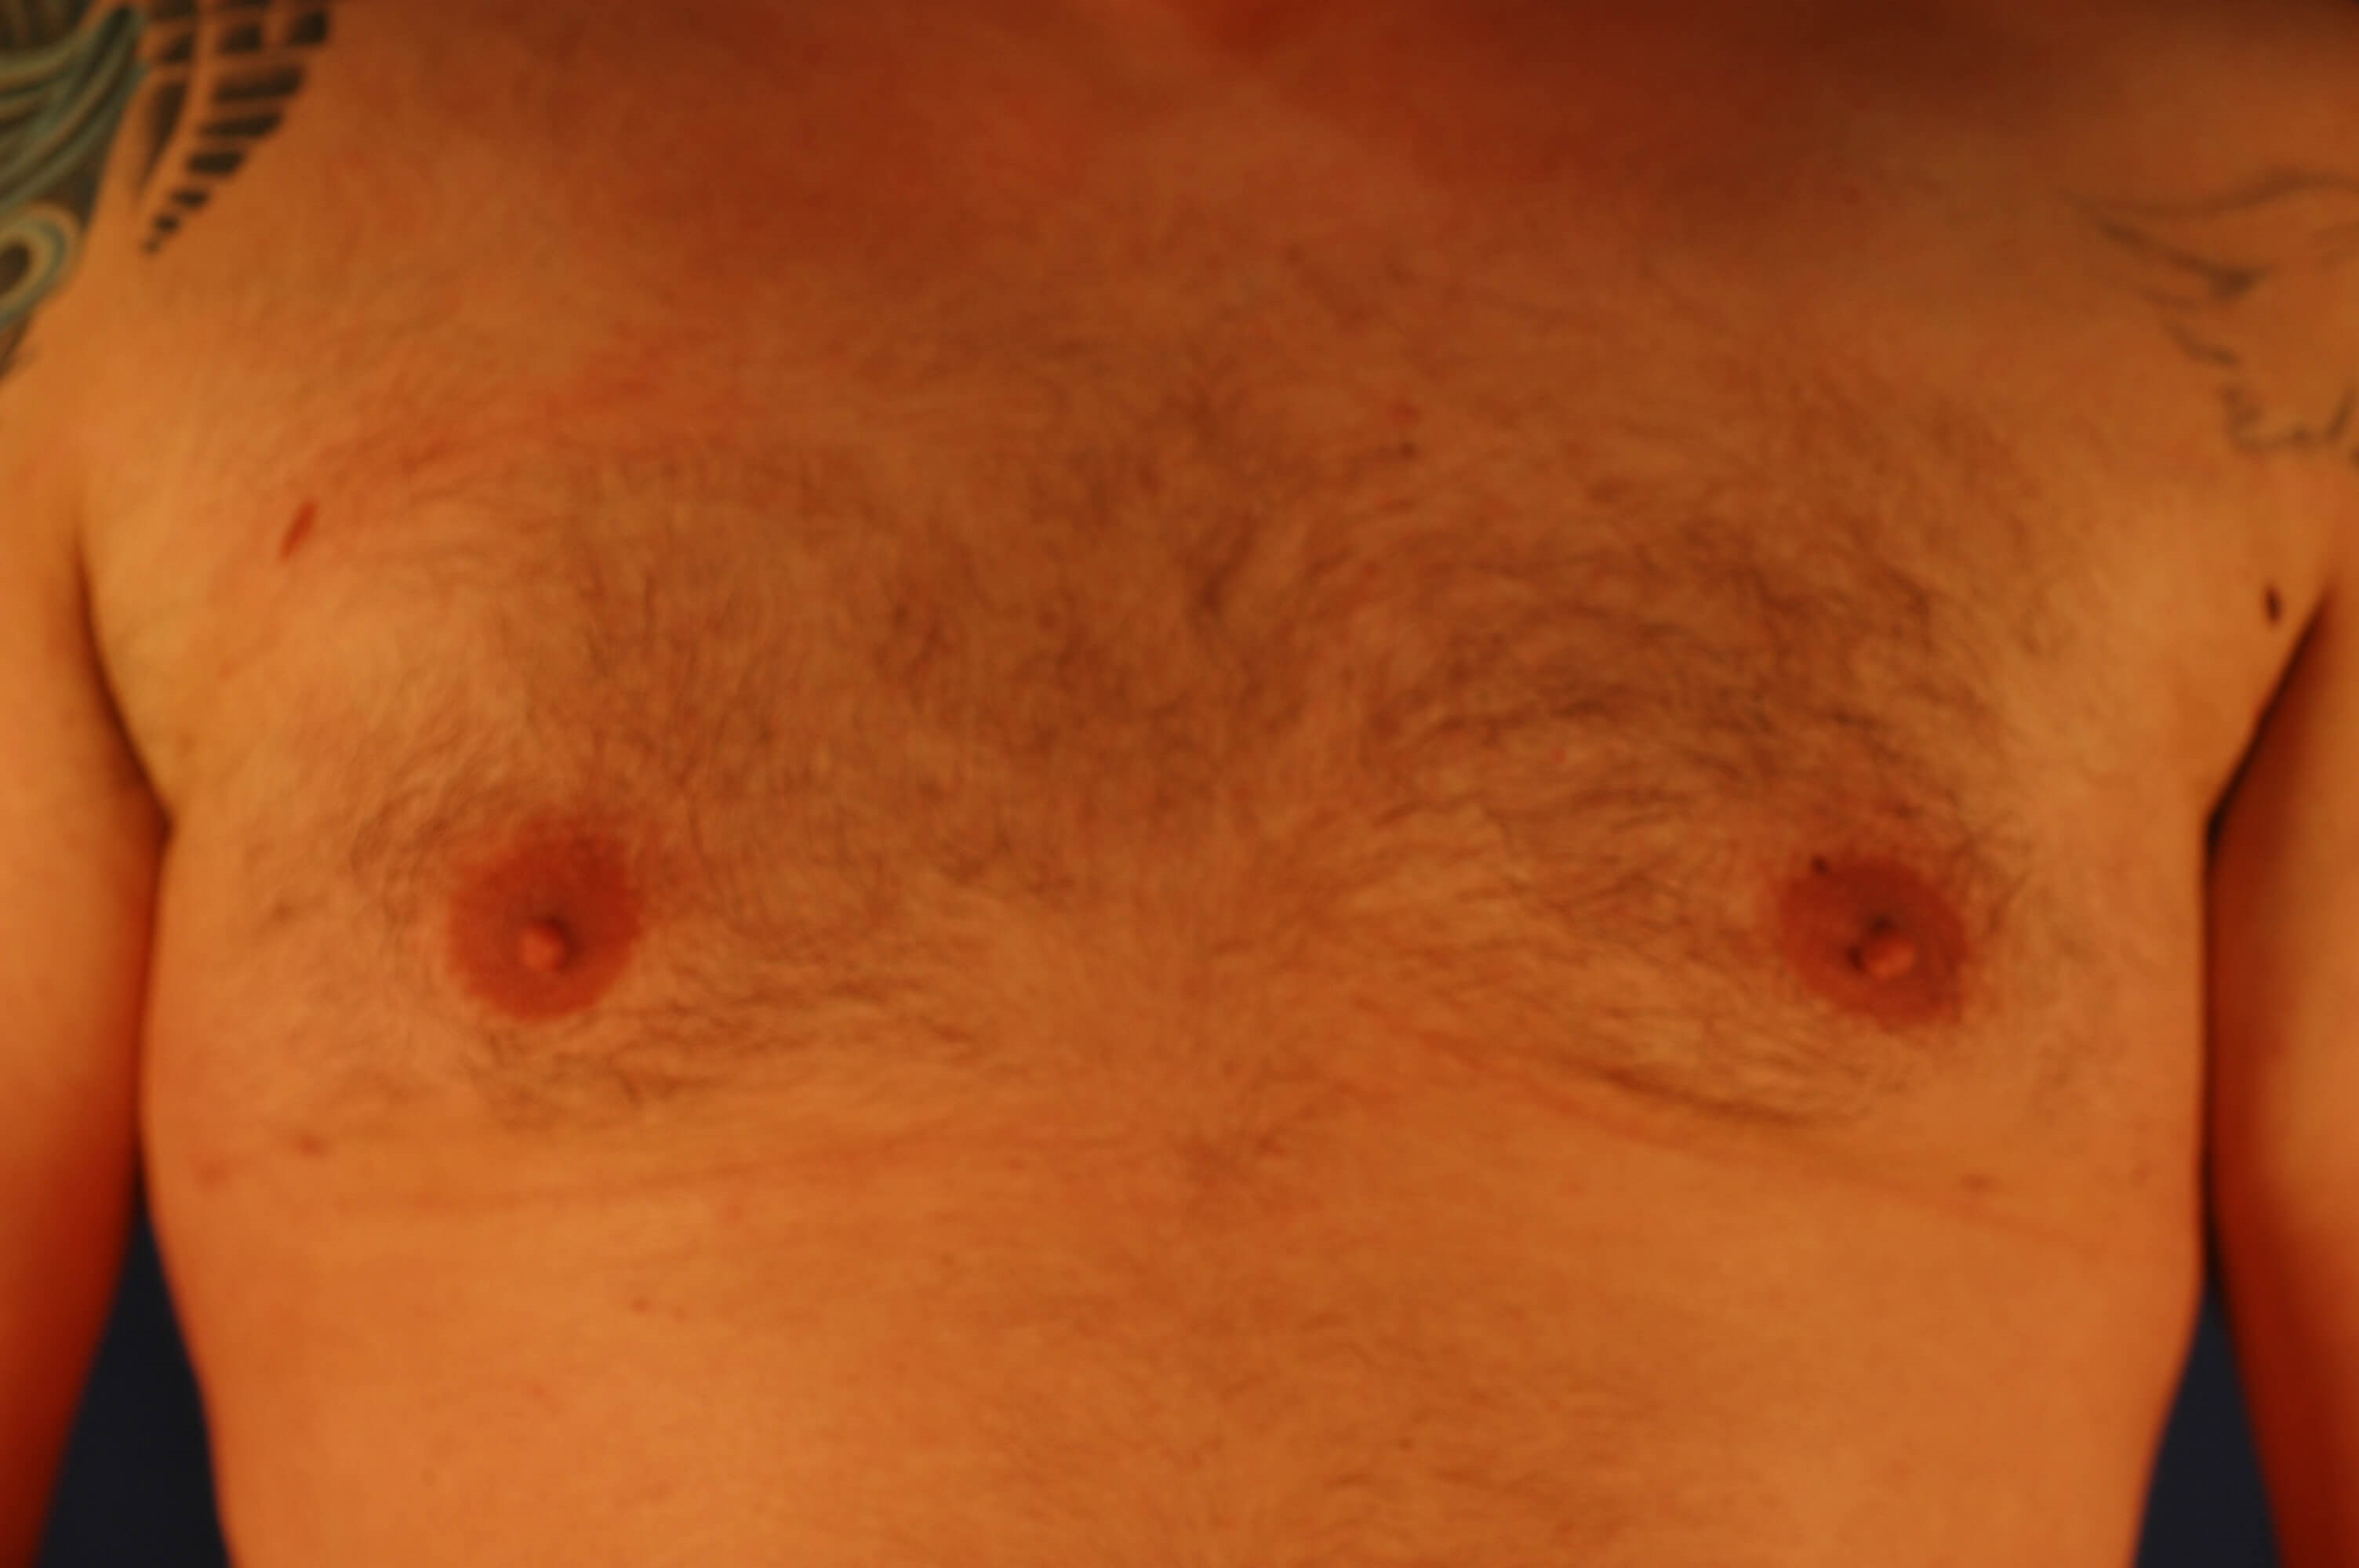 Newport Beach Gynecomastia Front View After